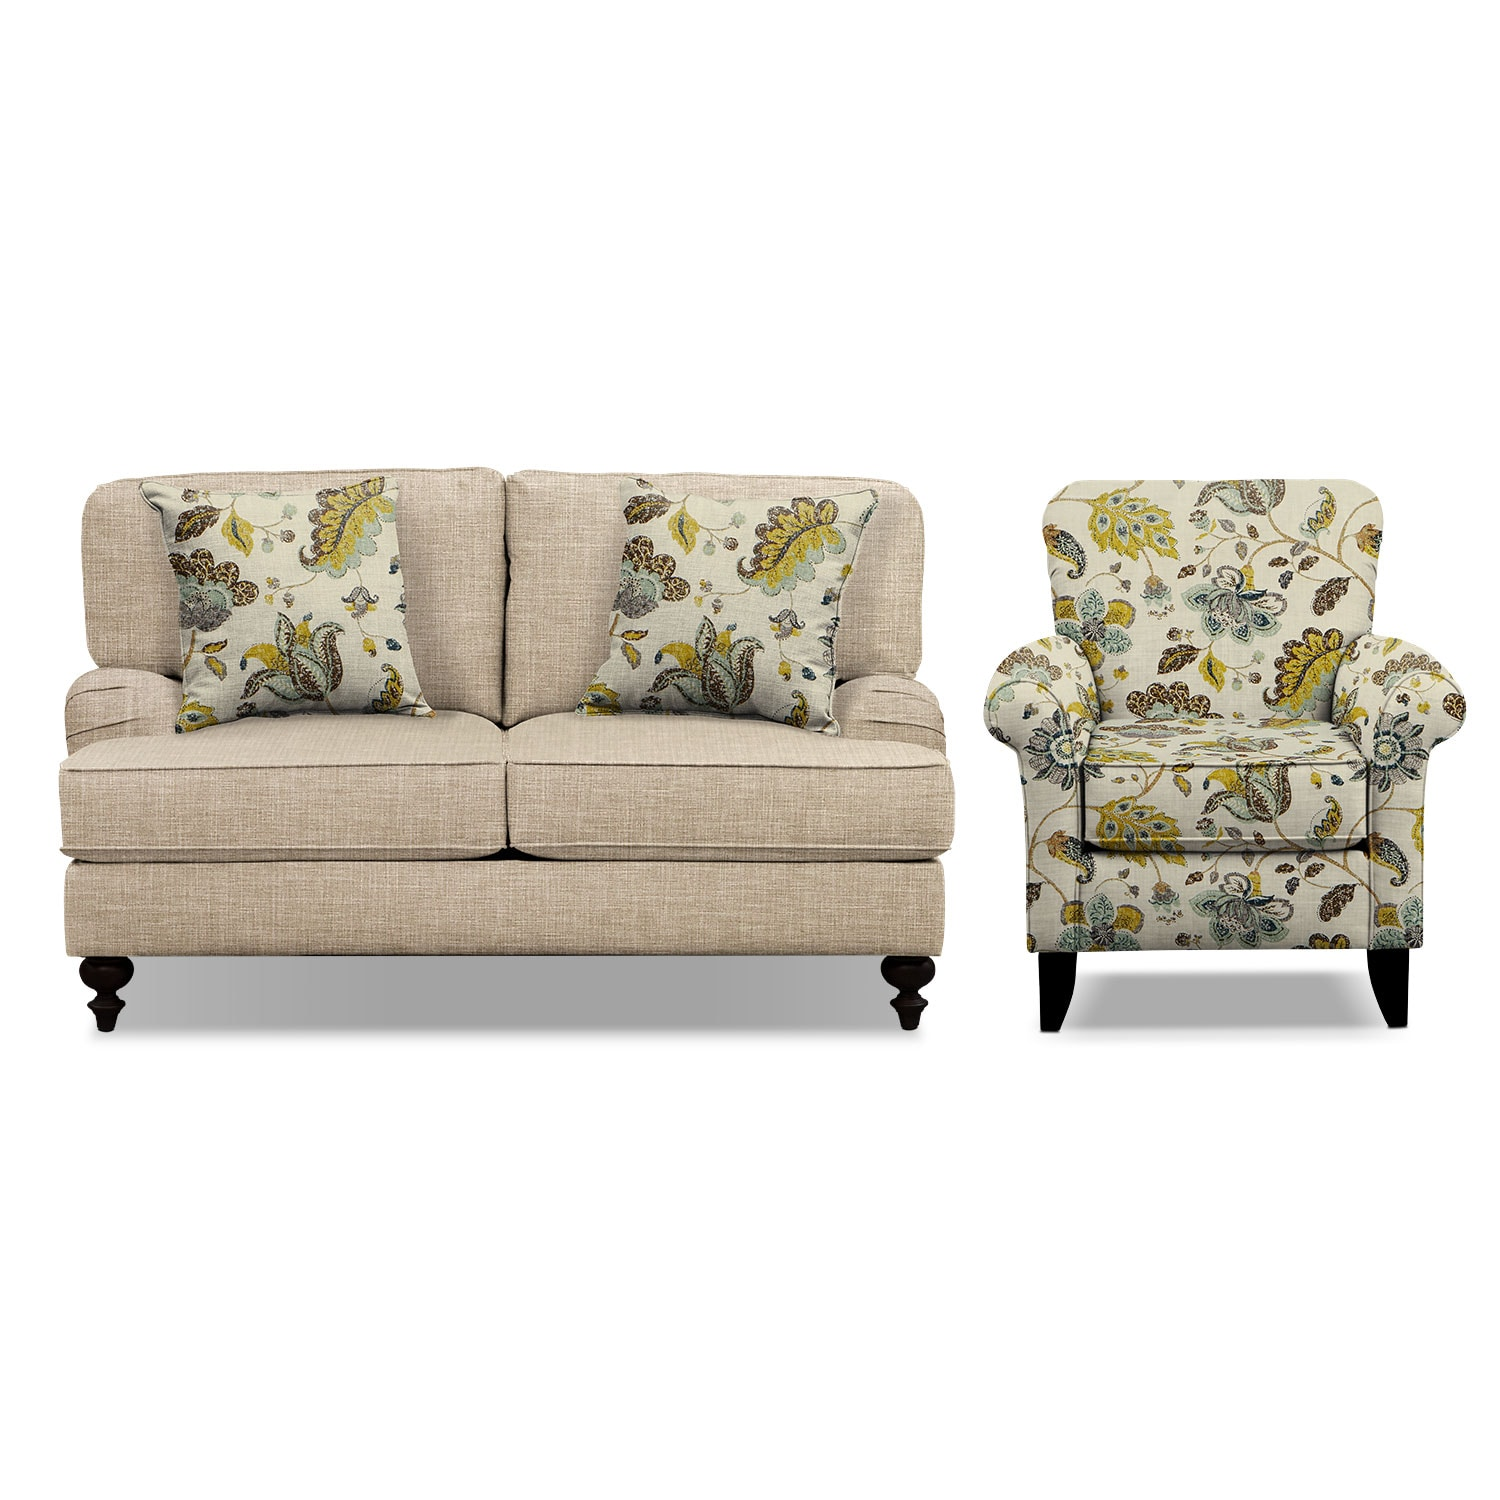 "Living Room Furniture - Avery Taupe 62"" Innerspring Sleeper Sofa and Accent Chair Set"